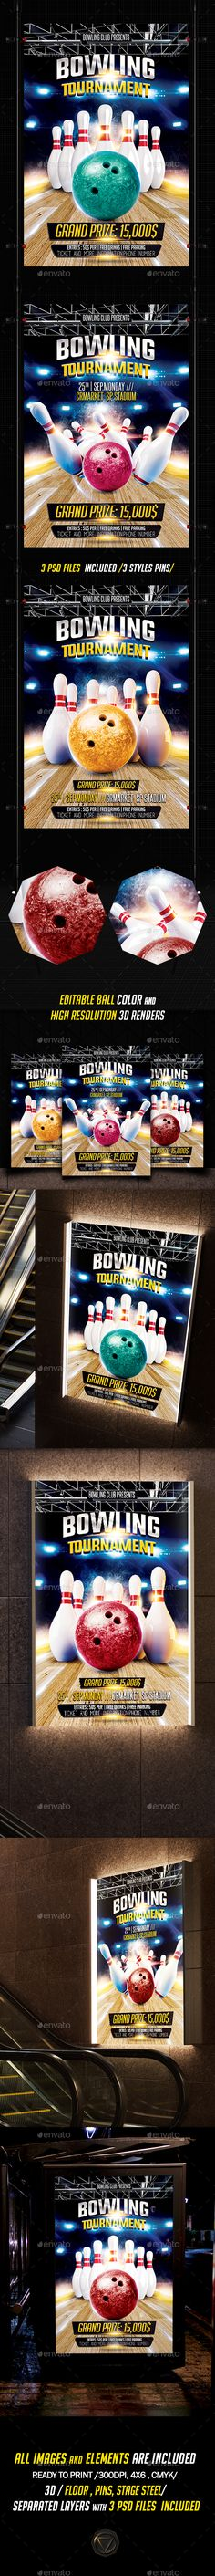 Bowling Tournament Flyer Bowling, Psd flyer templates and Flyer - bowling flyer template free